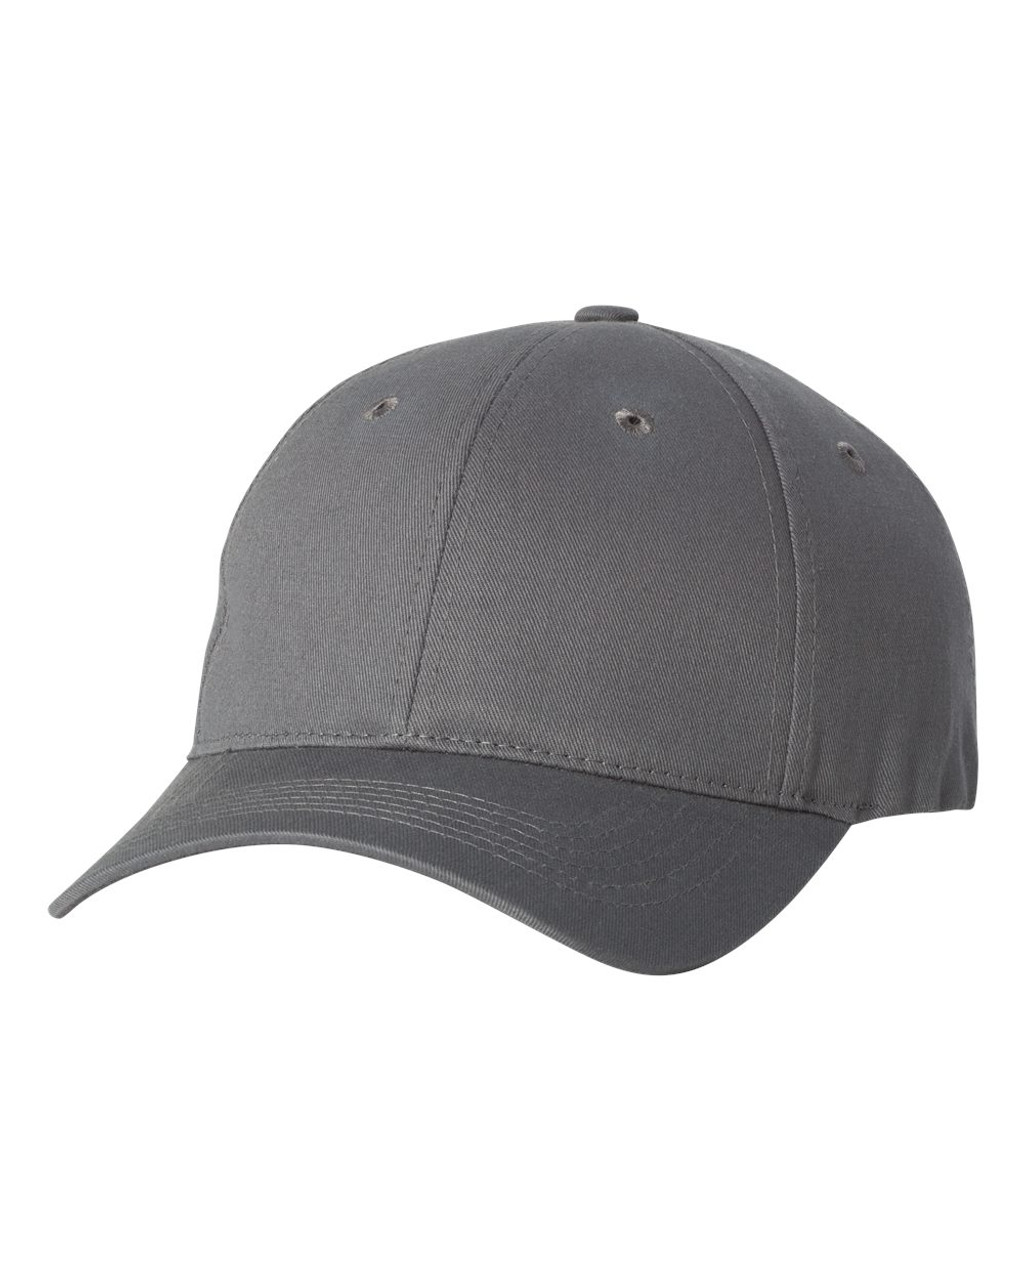 2260 - Twill cap with Velcro Closure by Sportsman in Dark Gray